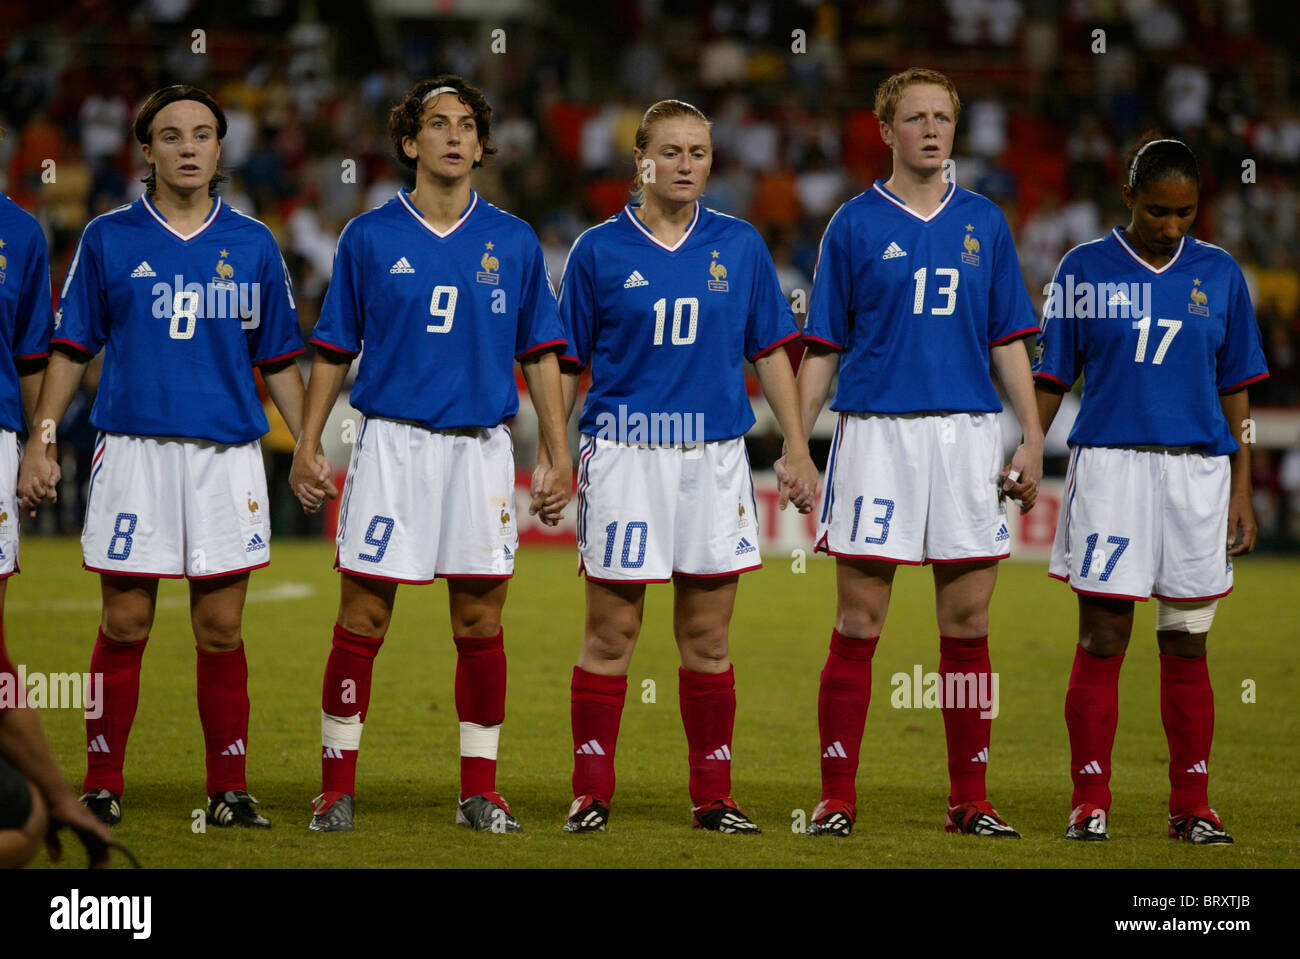 France National Team members line up prior to a 2003 Women's World Cup soccer match against the Korea Republic. - Stock Image